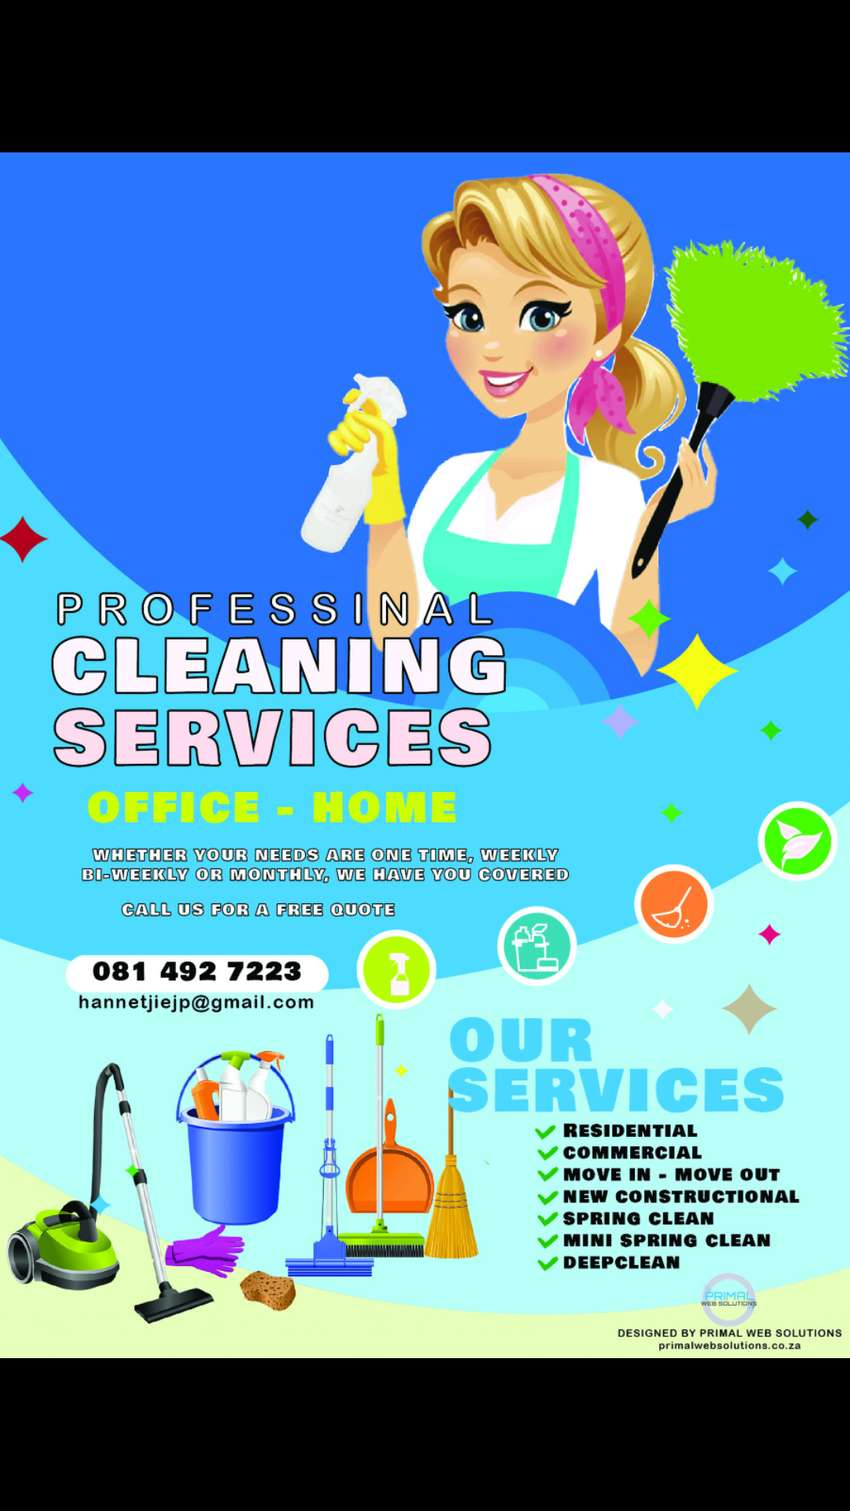 Professional cleaning services 0